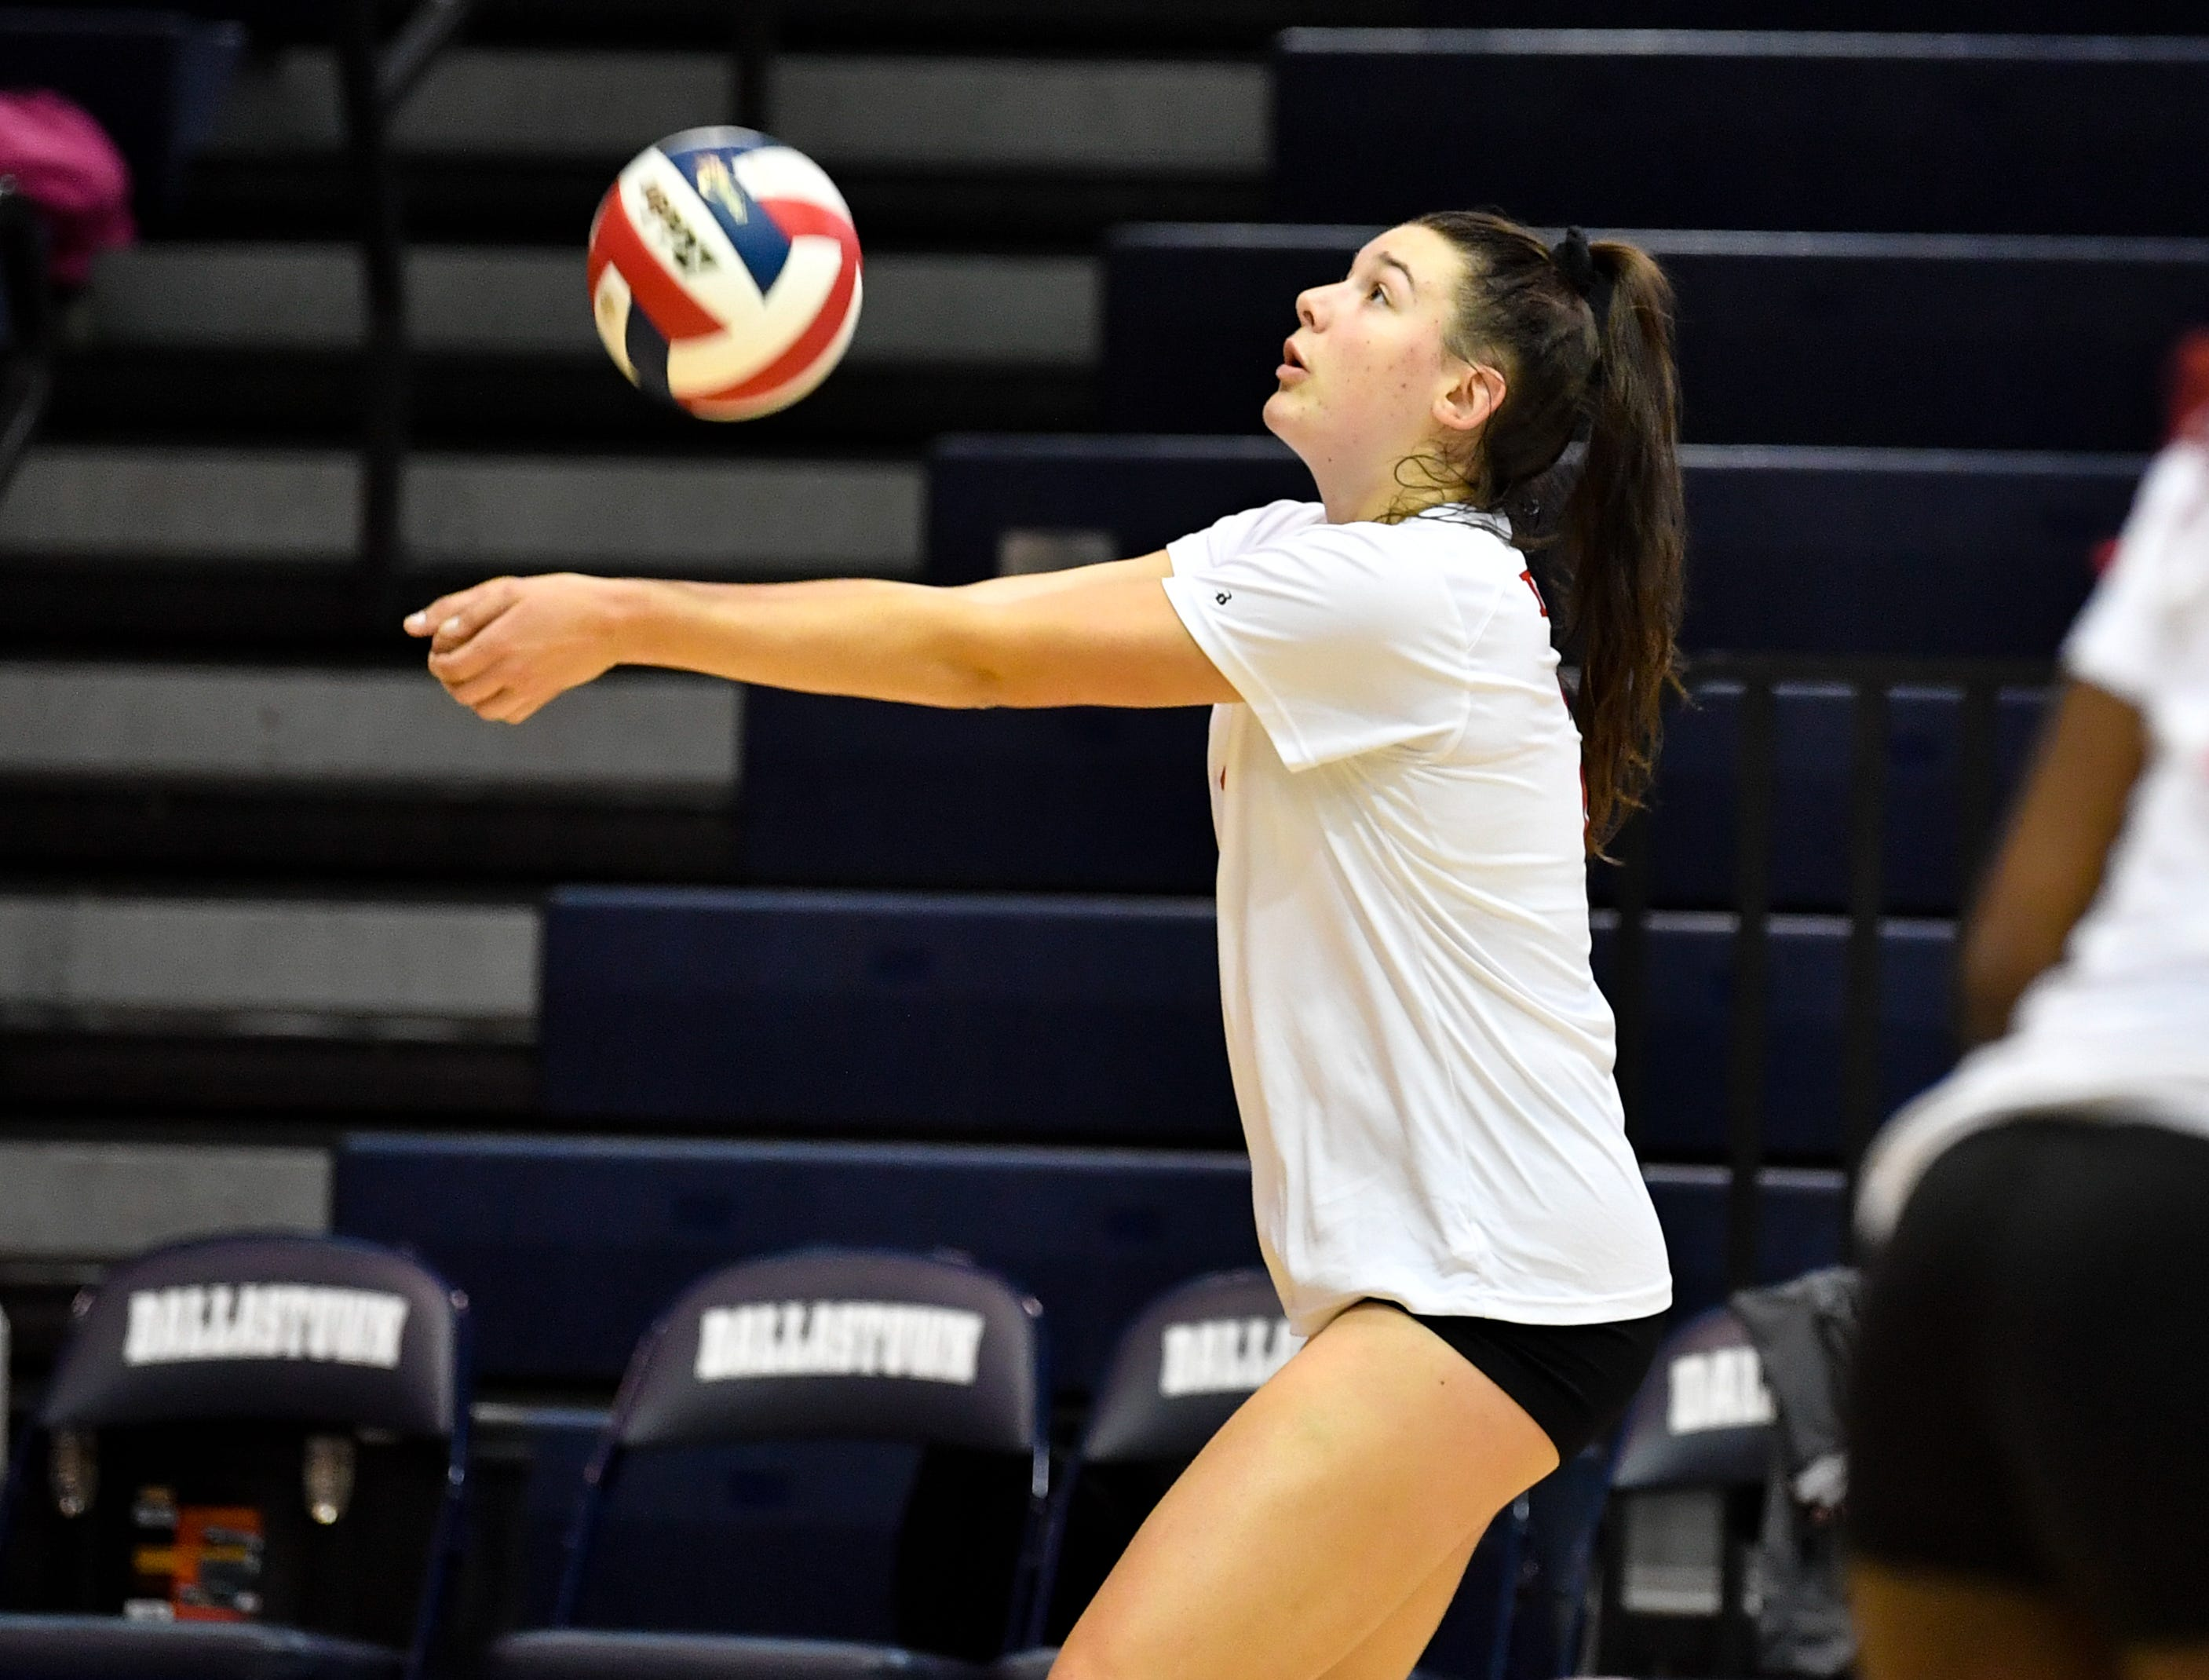 Emma Davis (21) keeps the ball in play during the YAIAA league volleyball tournament semifinals between West York and Dover, Tuesday, October 23, 2018. The Bulldogs defeated the Eagles 3-1.